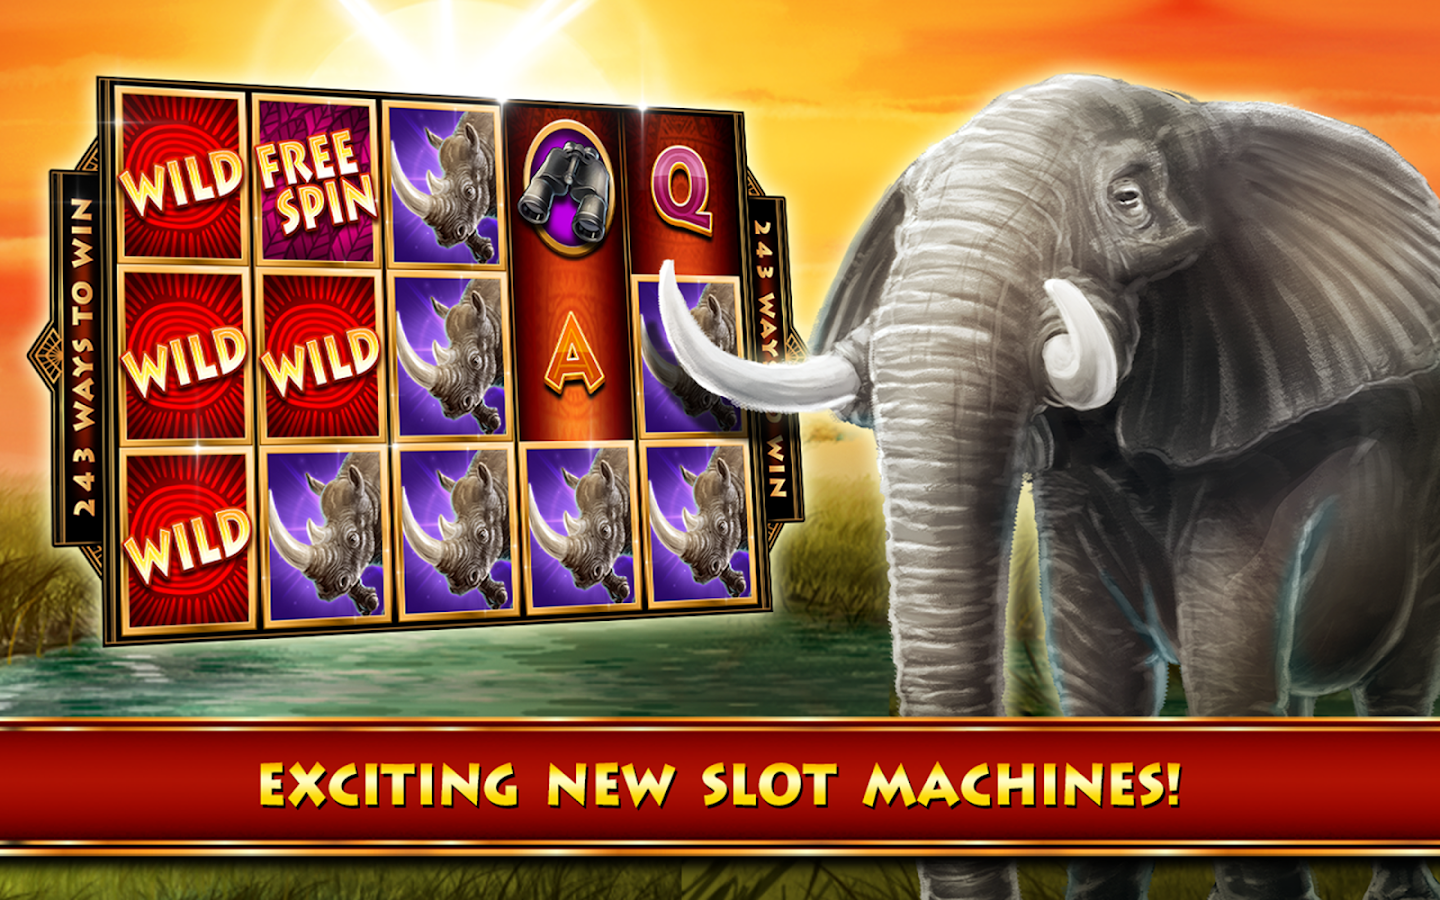 Play the most realistic slots! More than 25 FREE slots with large smoothly animated reels and lifeli